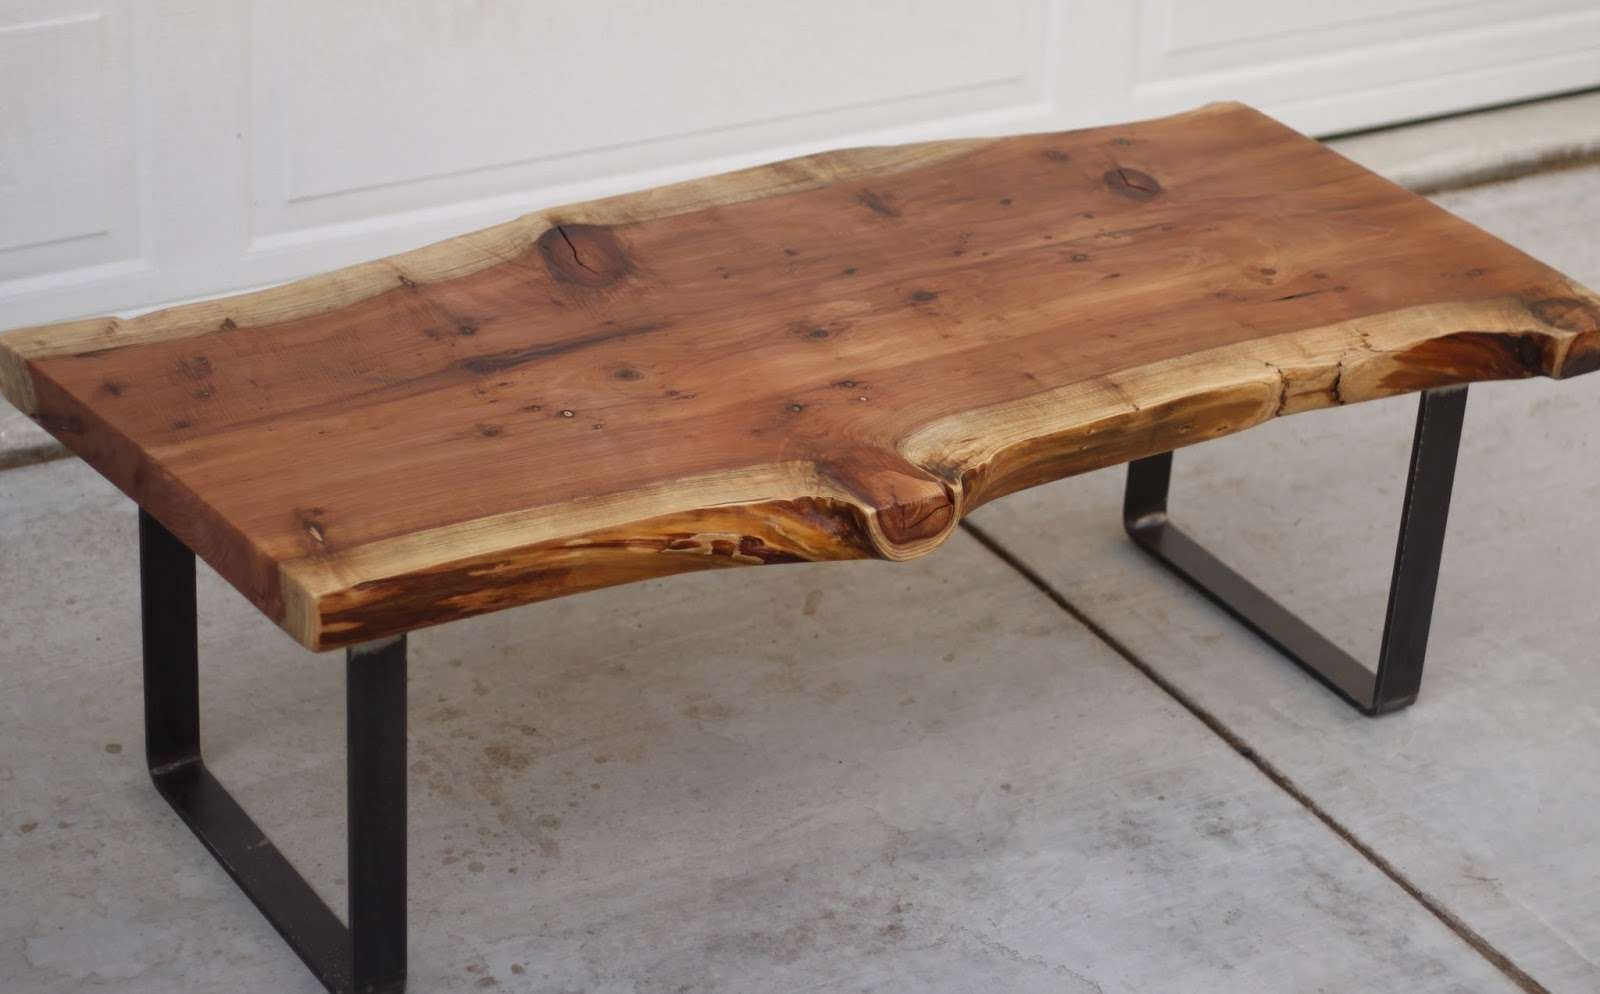 Newest Natural Wood Coffee Tables With Regard To Gaining The Natural Power With Round Wood Coffee Table (View 16 of 20)